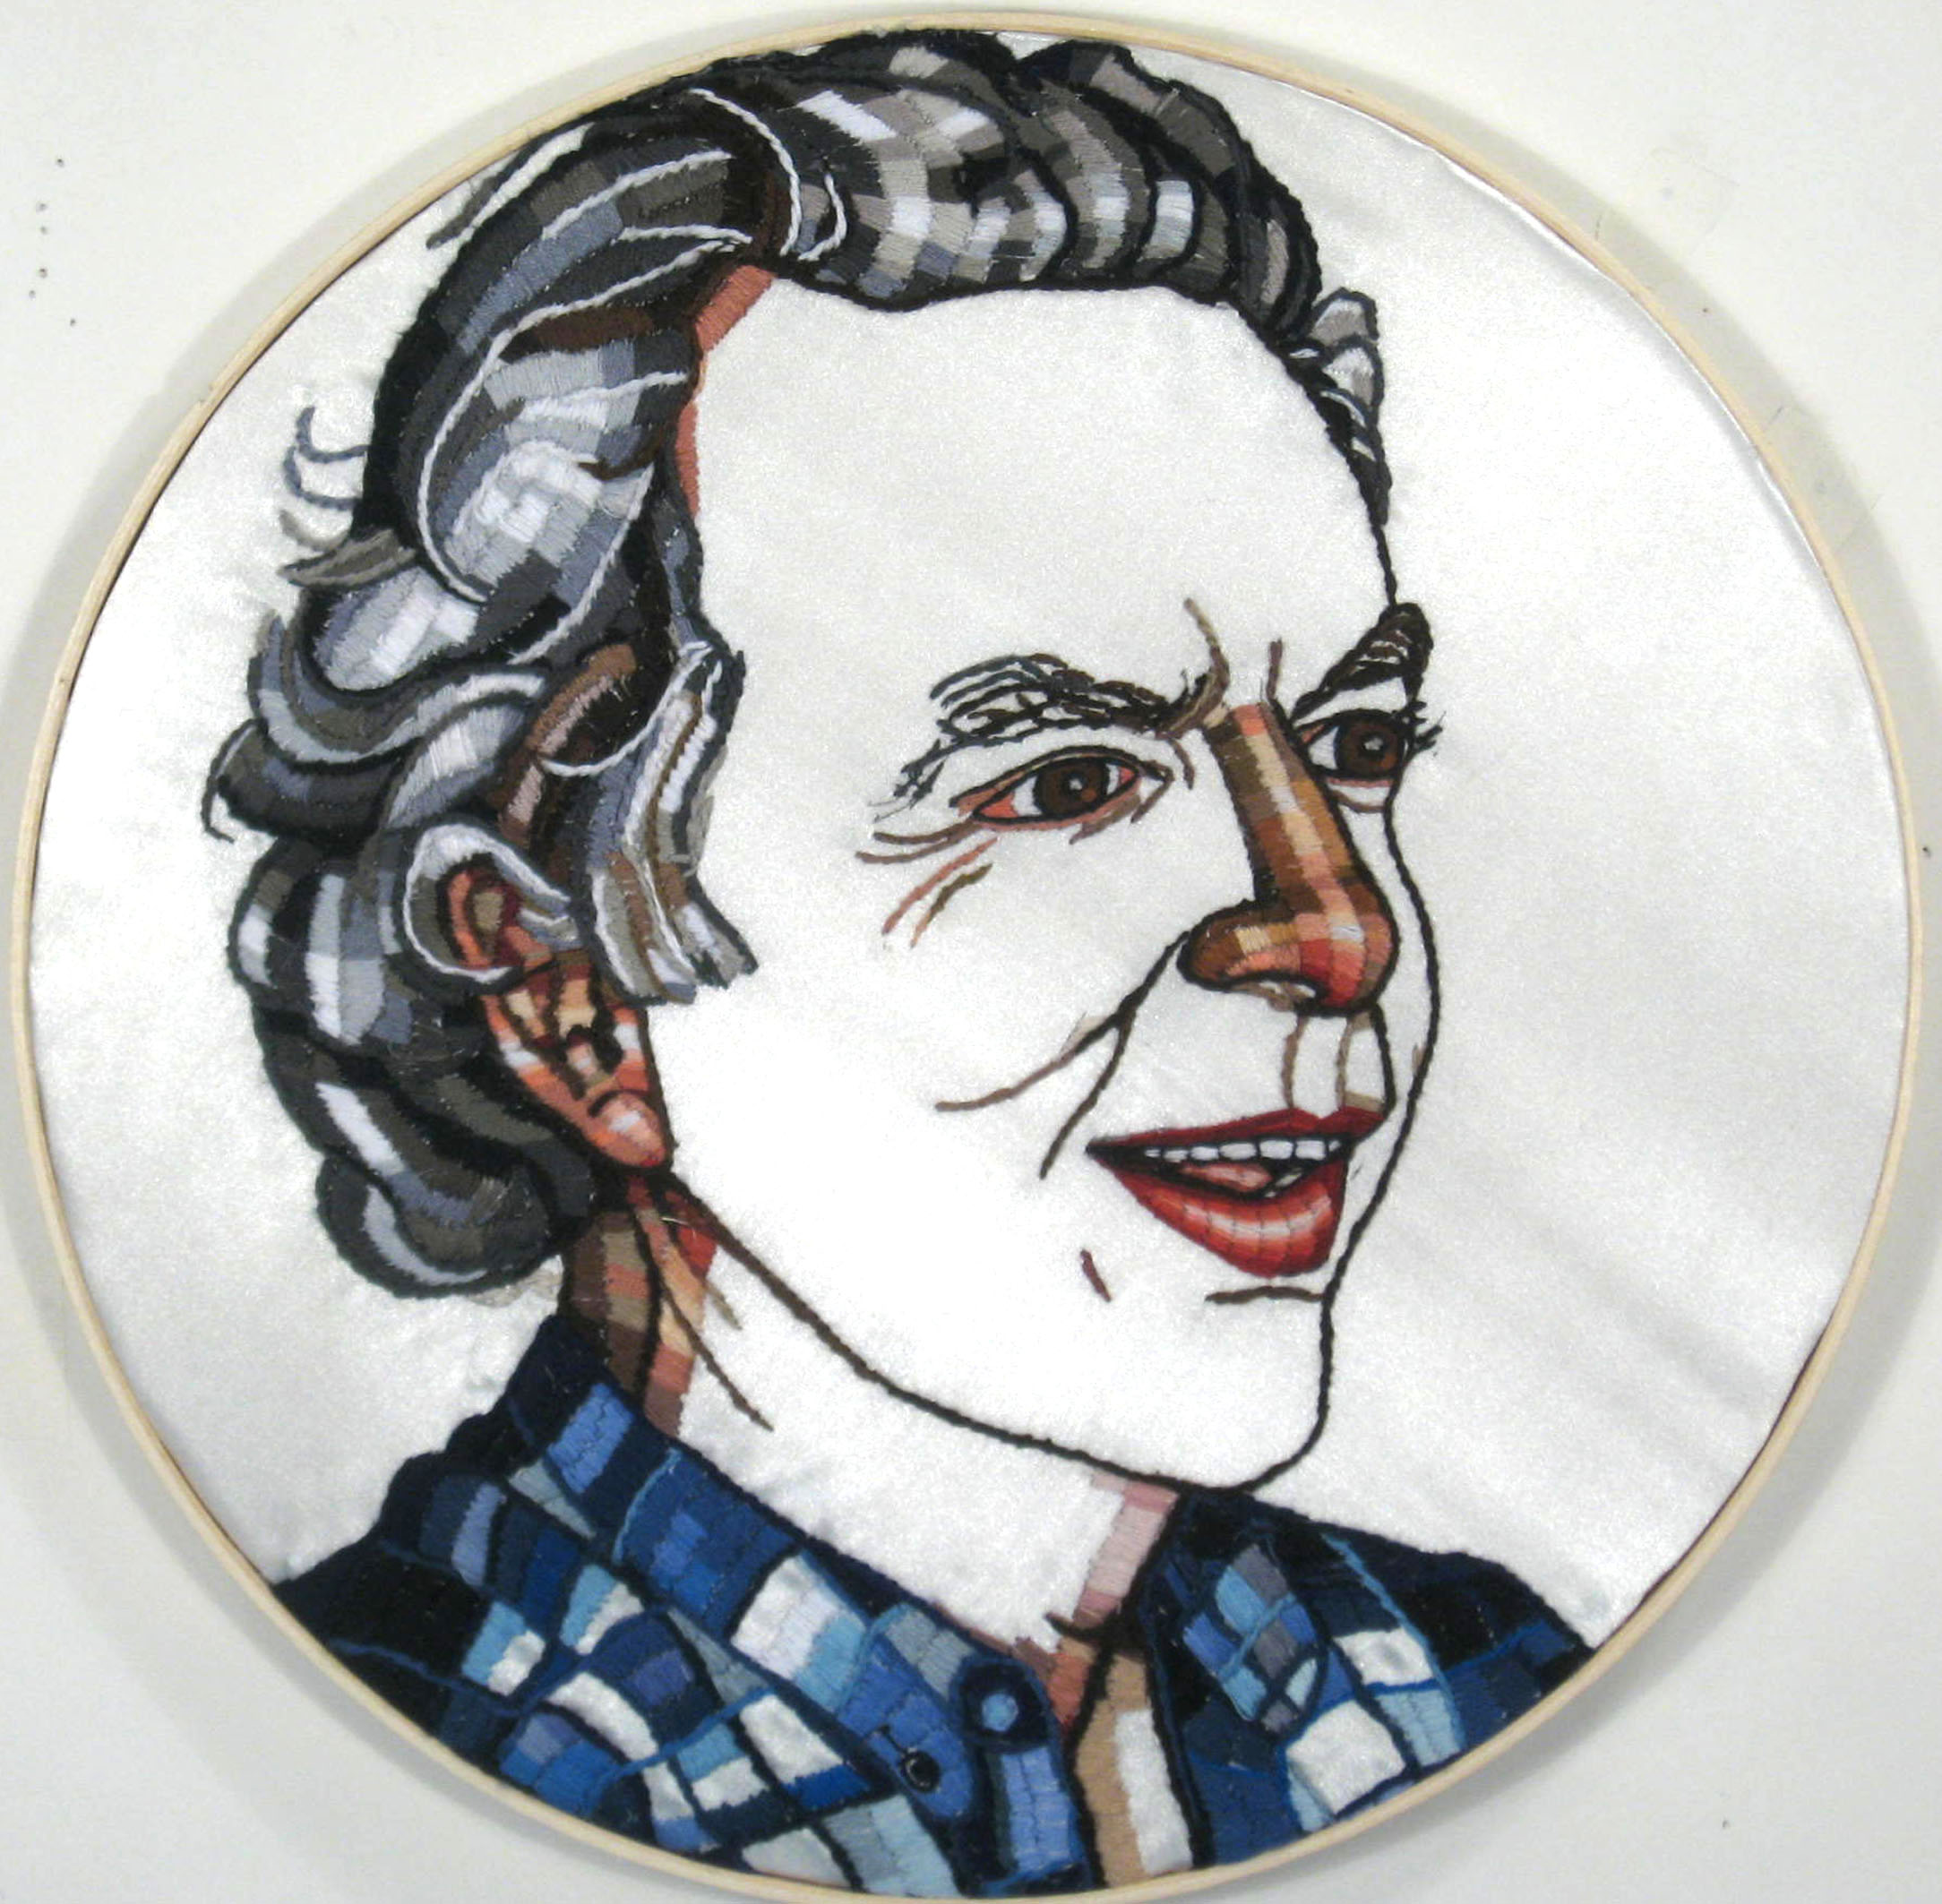 hand-embroidered portrait